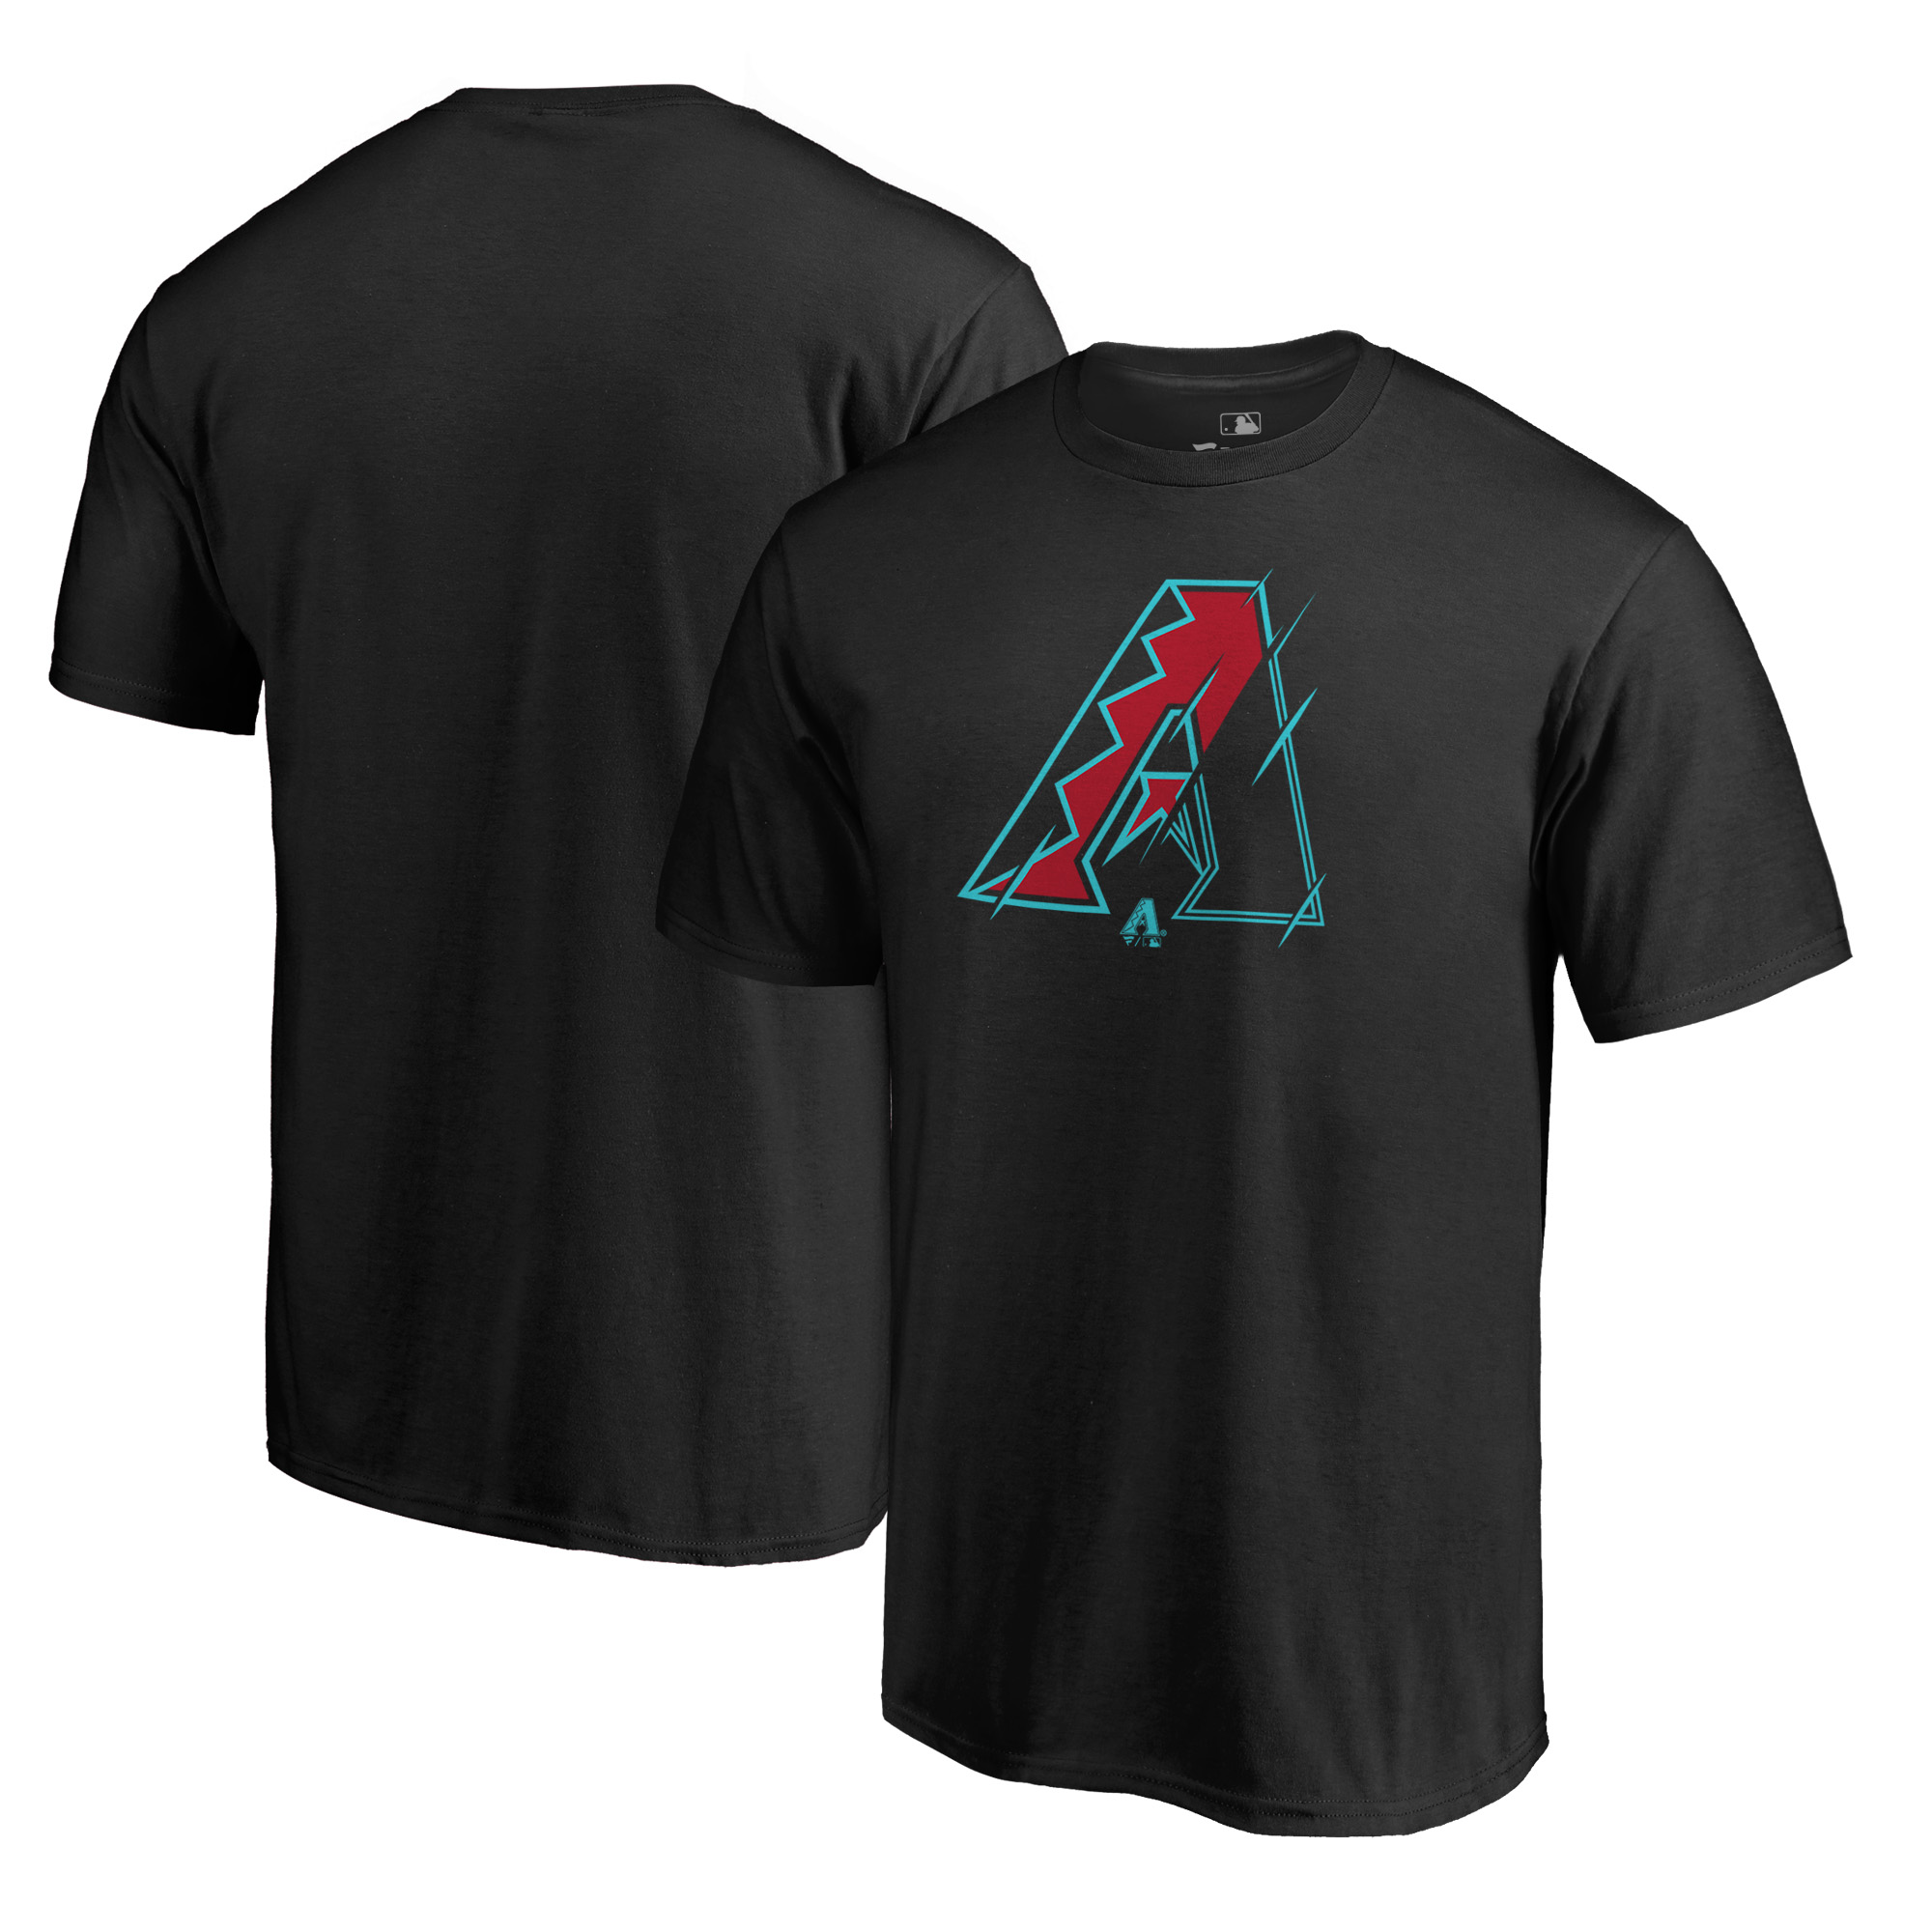 Arizona Diamondbacks Fanatics Branded X-Ray T-Shirt - Black